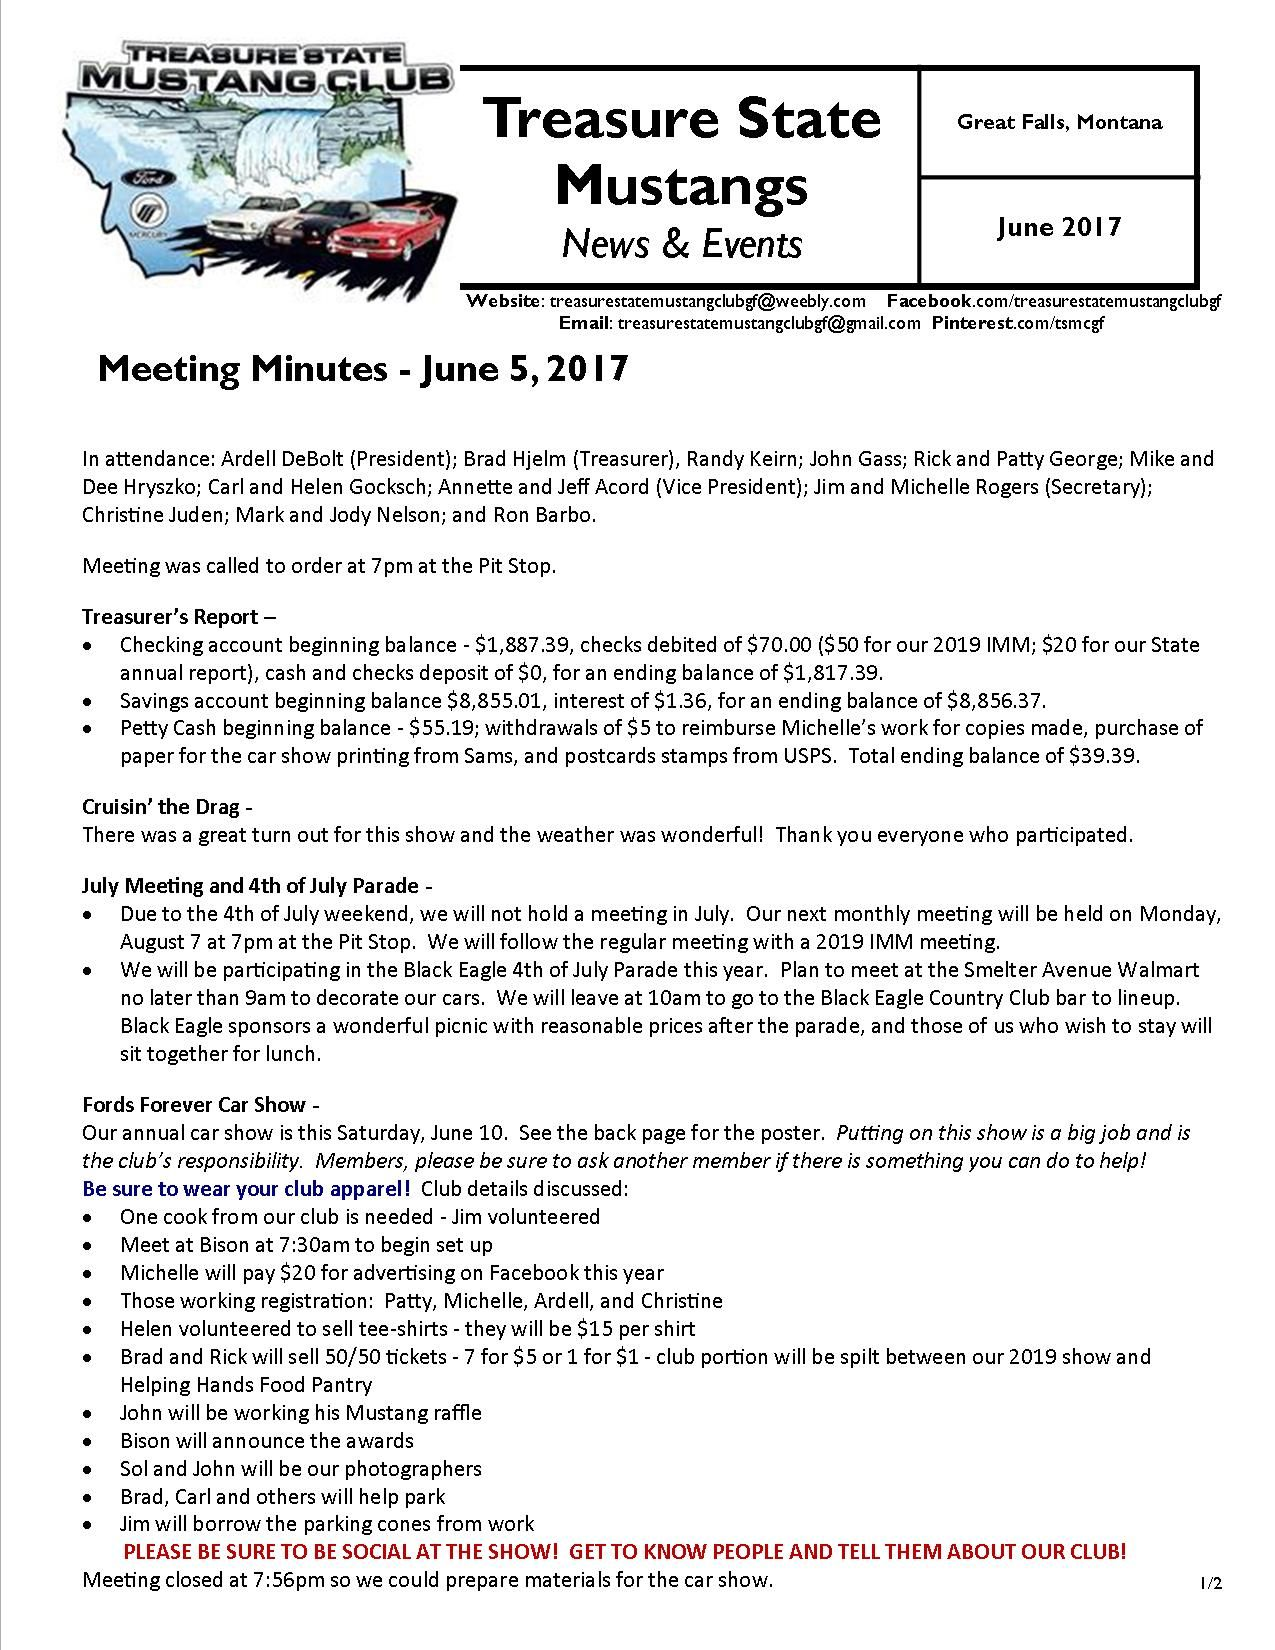 Click the link to view our entire June 2017 newsletter:  http://treasurestatemustangclubgf.weebly.com/uploads/2/6/9/1/26917180/june_2017_newsletter.pdf